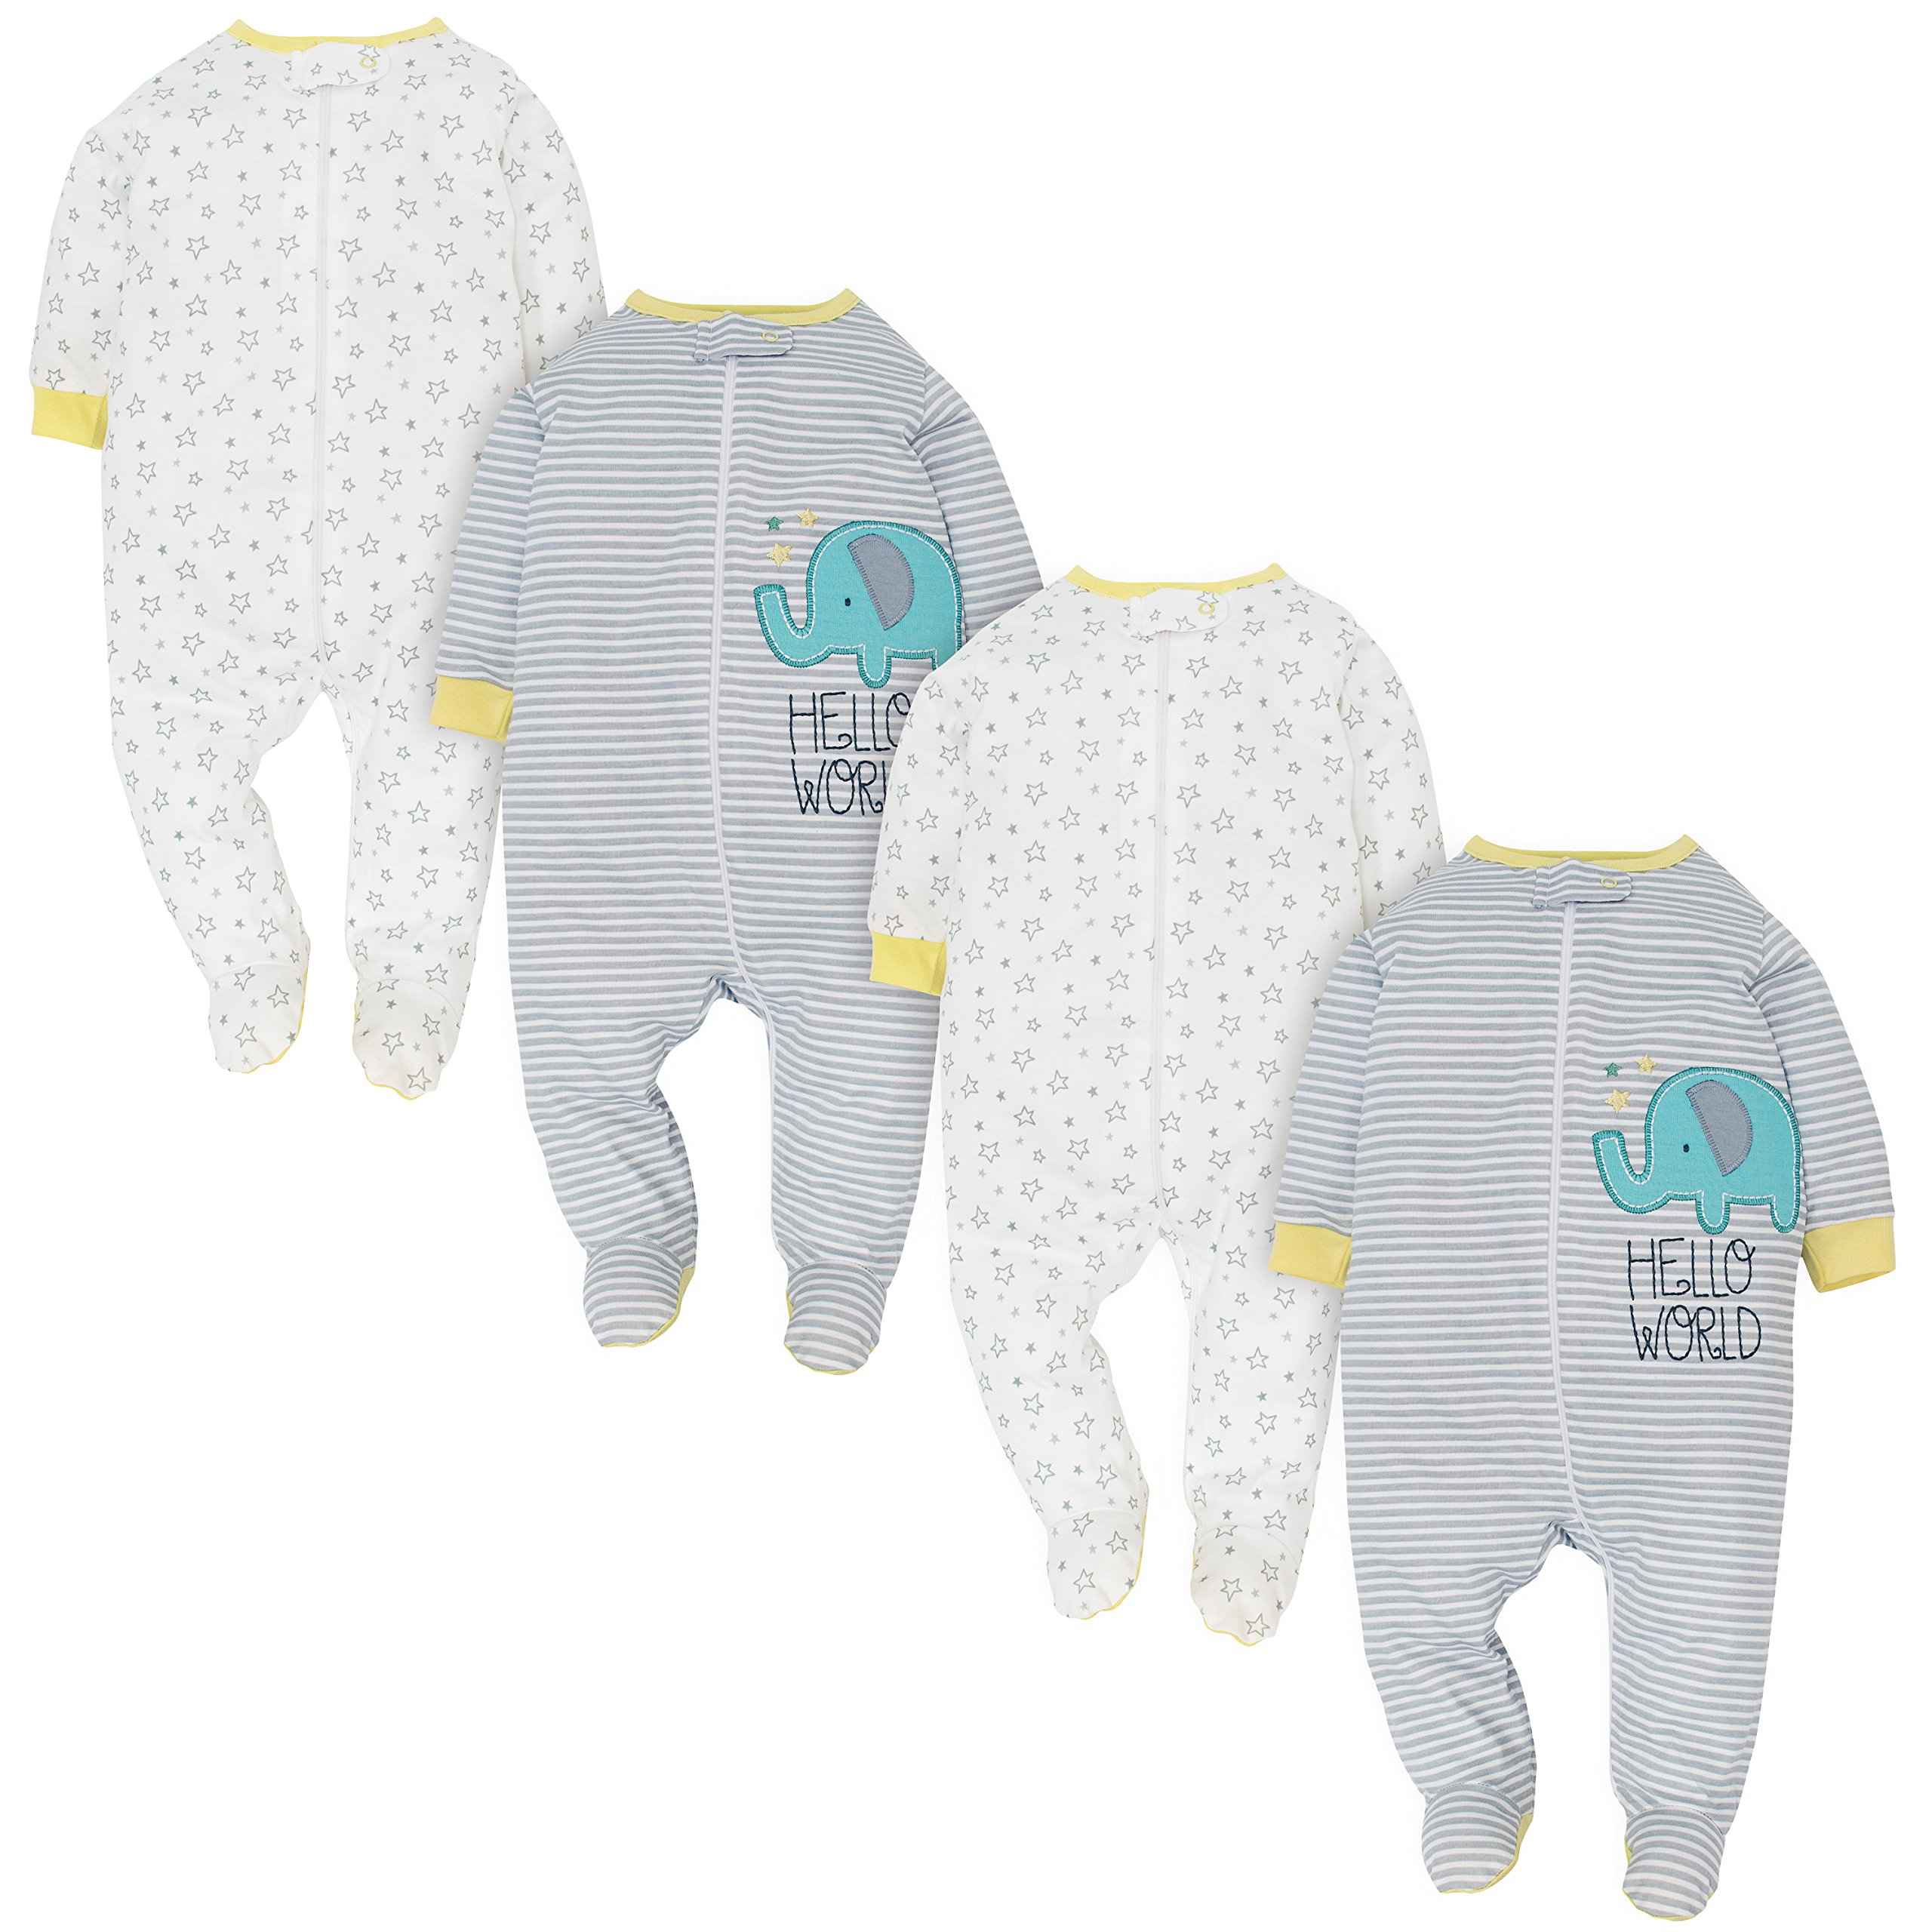 Gerber Baby 4 Pack Sleep and Play, Little Zoo, 0-3 Months